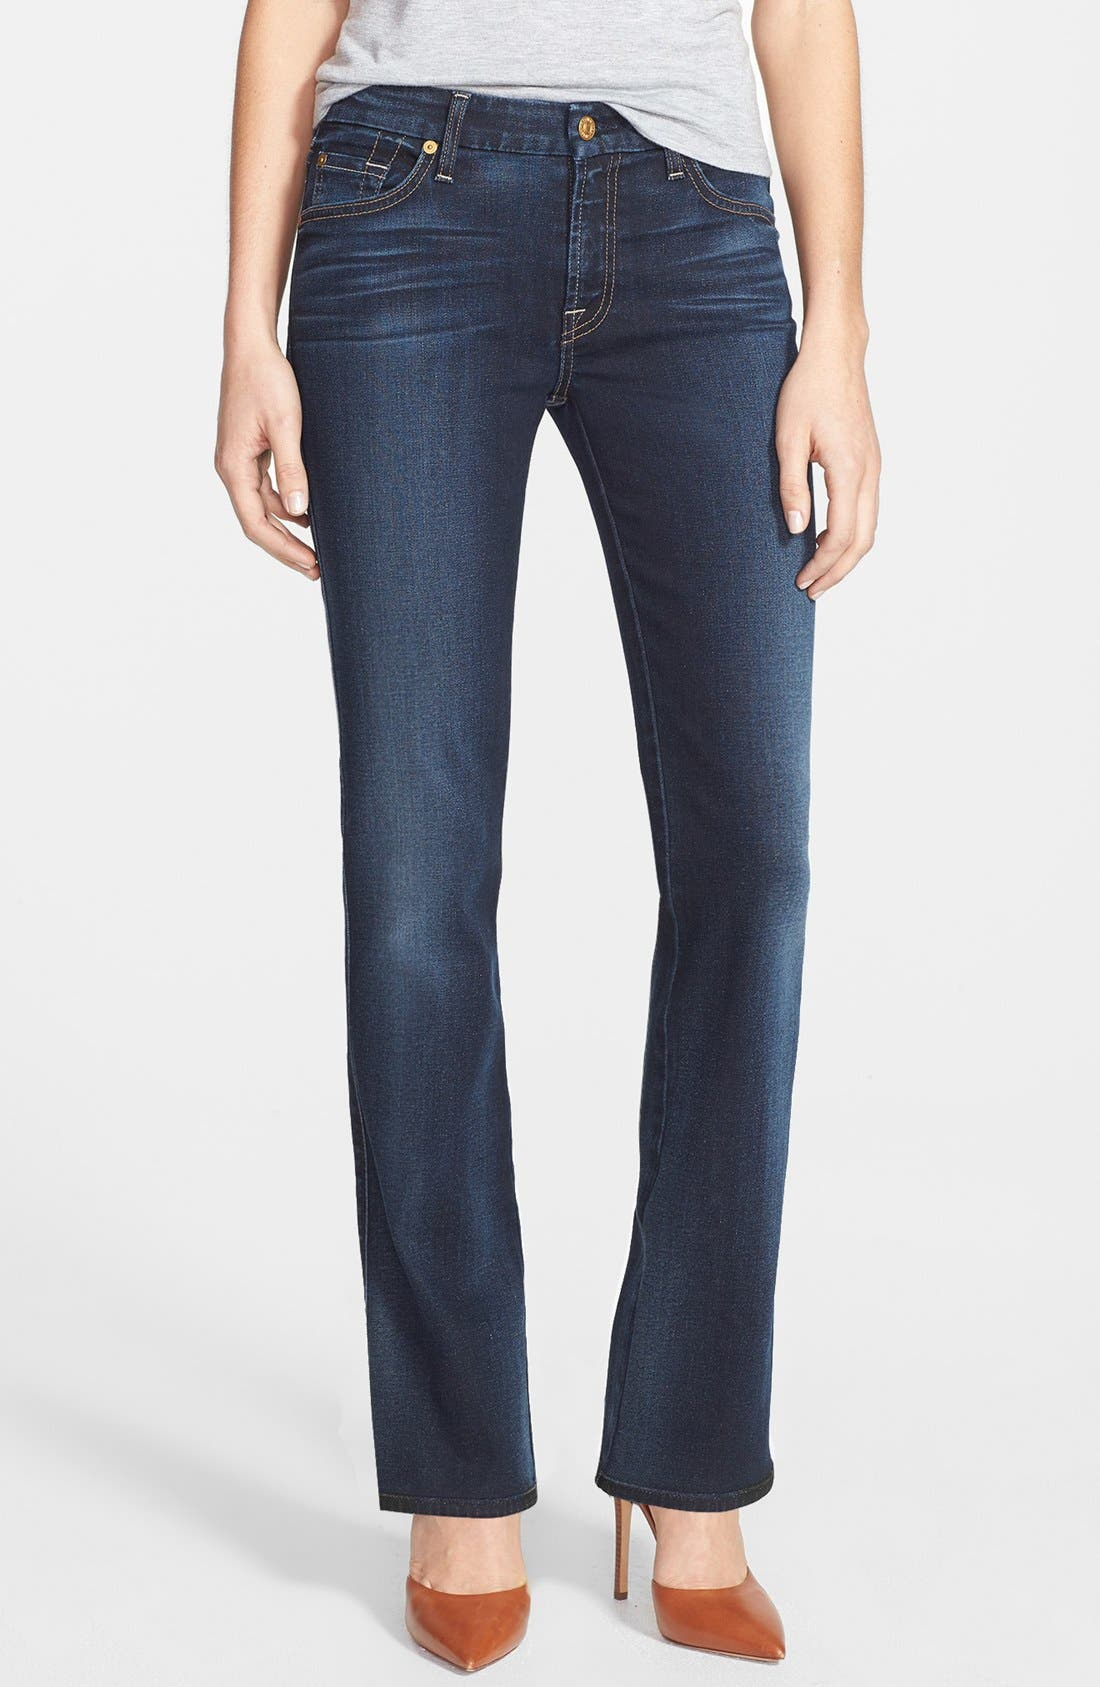 Main Image - 7 For All Mankind® 'Kimmie' Bootcut Jeans (Merci Blue)